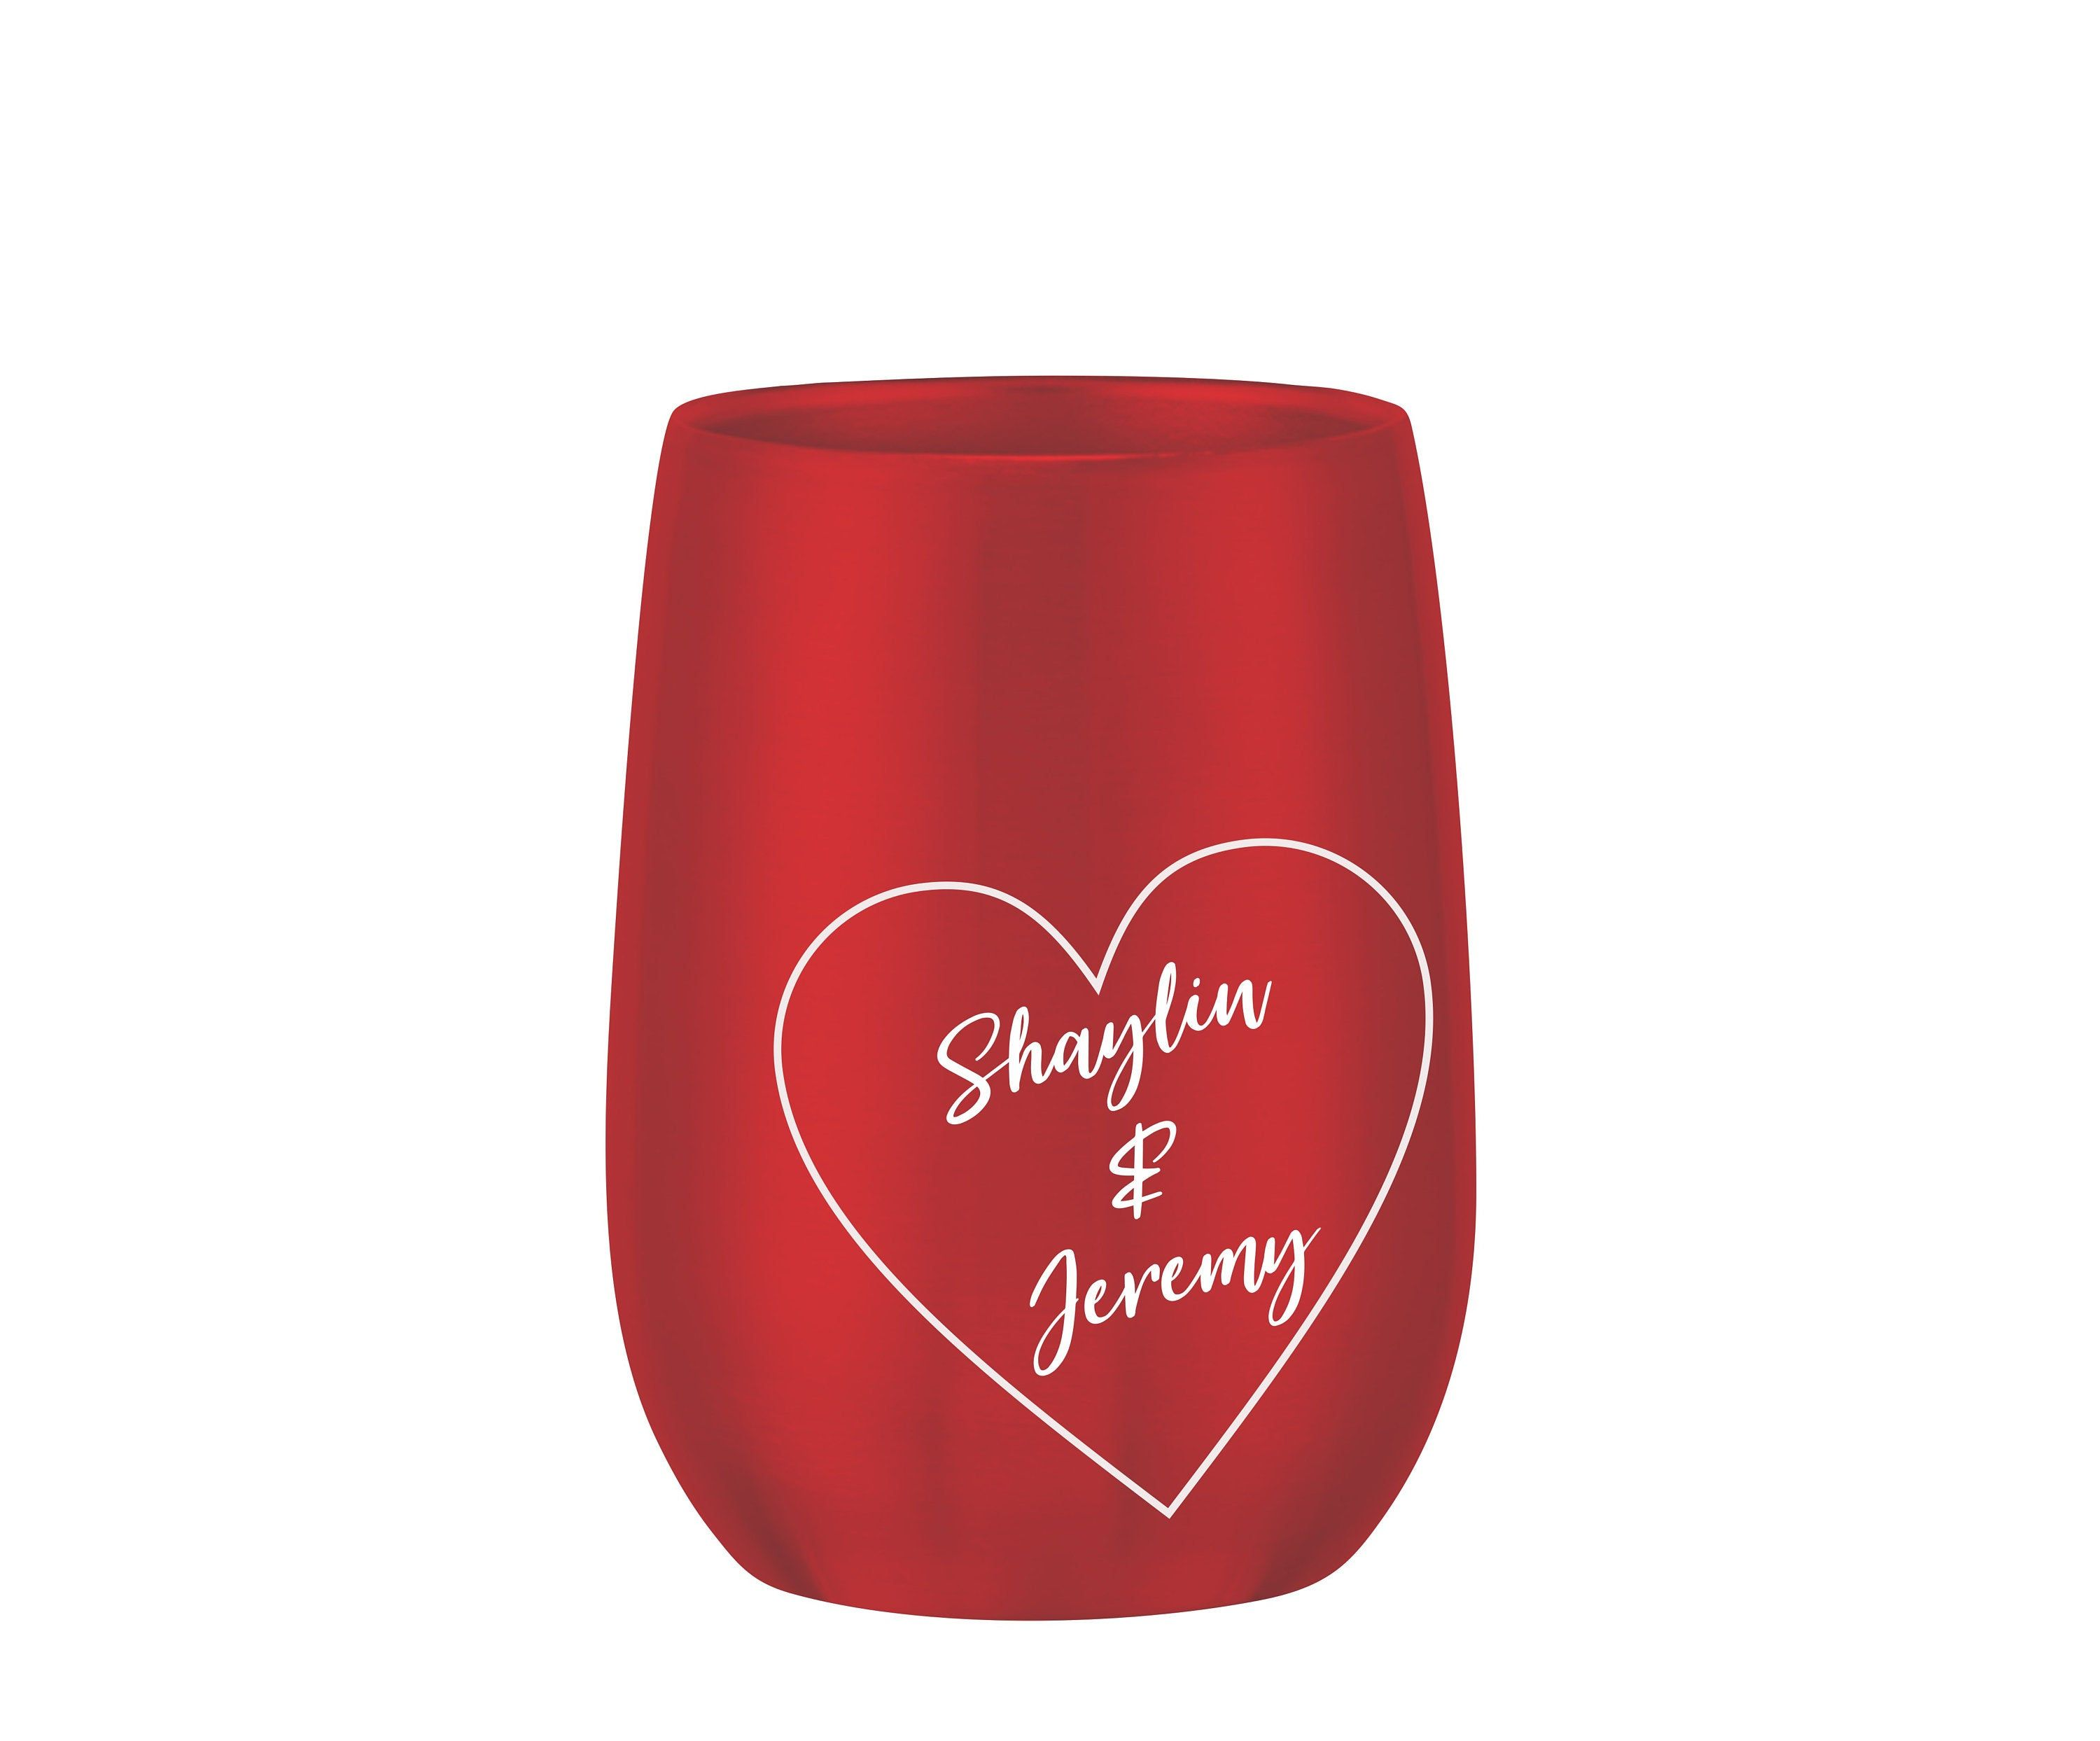 Custom Name Decal Personalized Vinyl Letters Wording Personal Name Sticker Bridal Wedding Tumbler Yeti Laptop Mug Decal Letter Sticker Name Stickers Vinyl Lettering Vinyl Signs